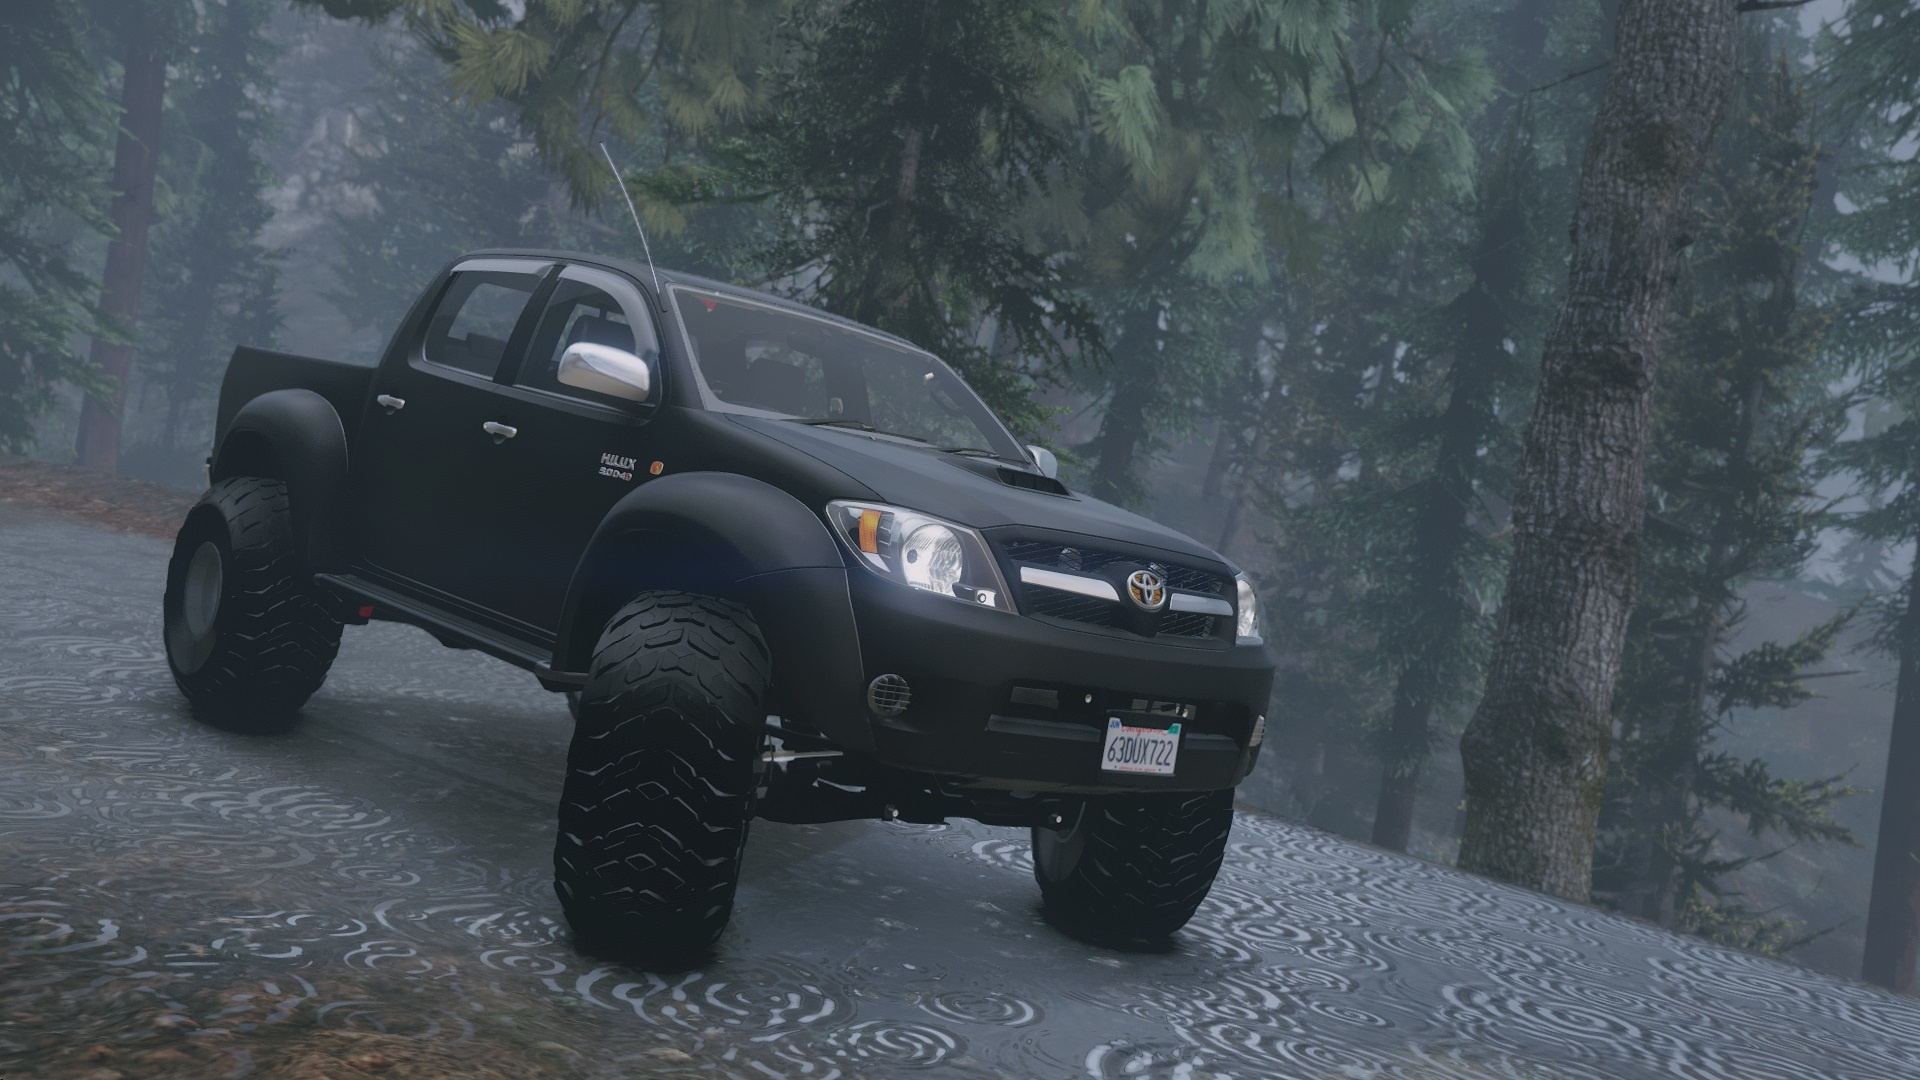 2007 top gear toyota hilux at38 arctic trucks add on tuning gta5. Black Bedroom Furniture Sets. Home Design Ideas